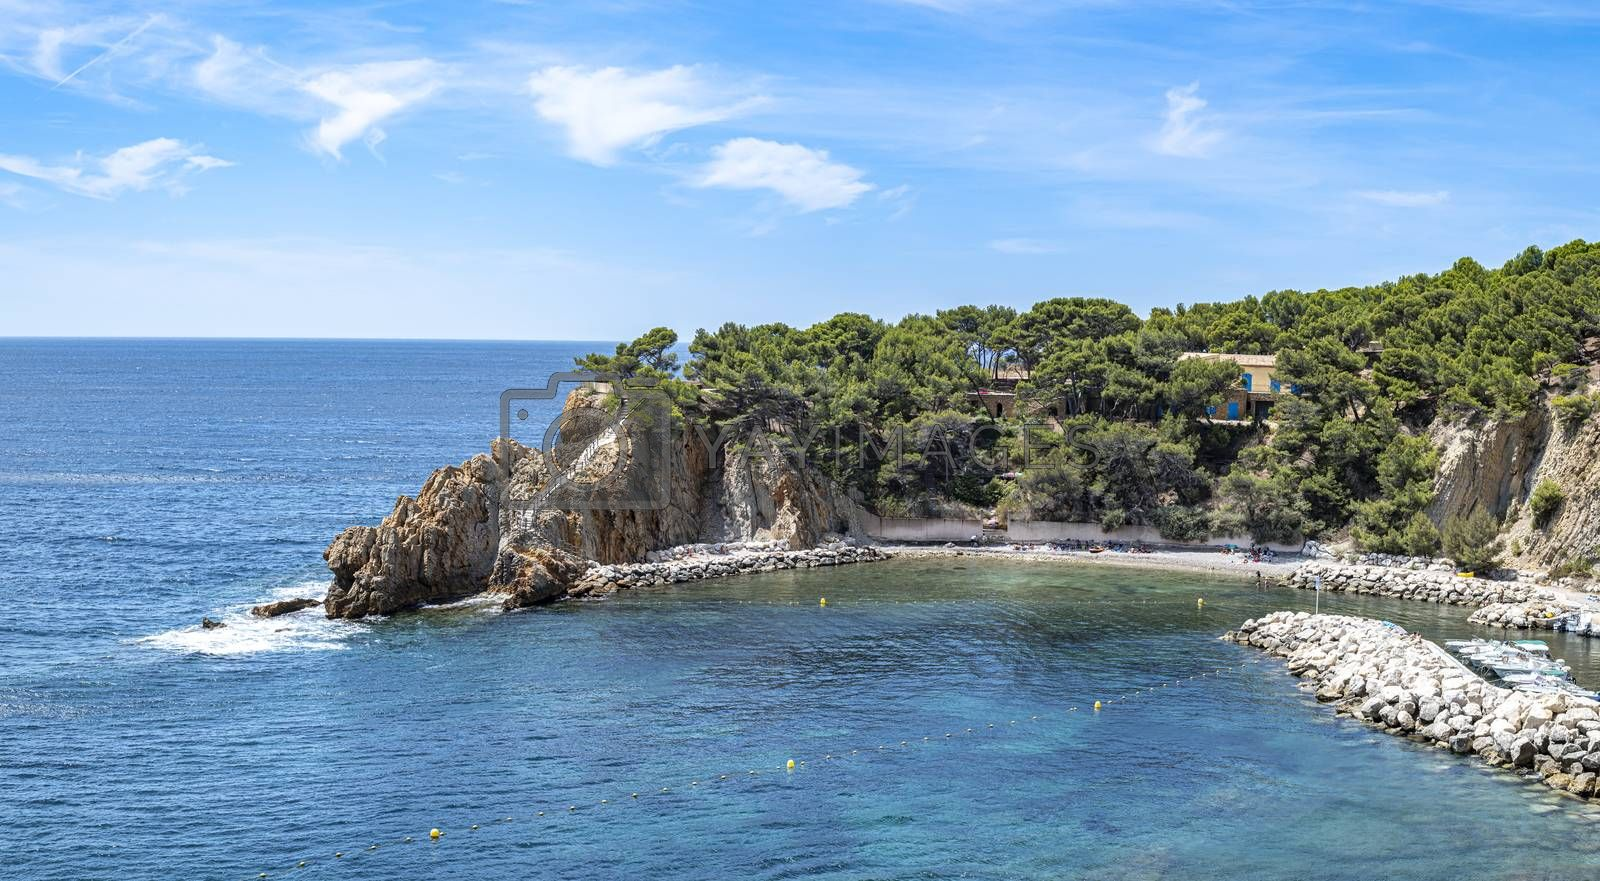 Royalty free image of Calanque de Figuières, South of France by GABIS